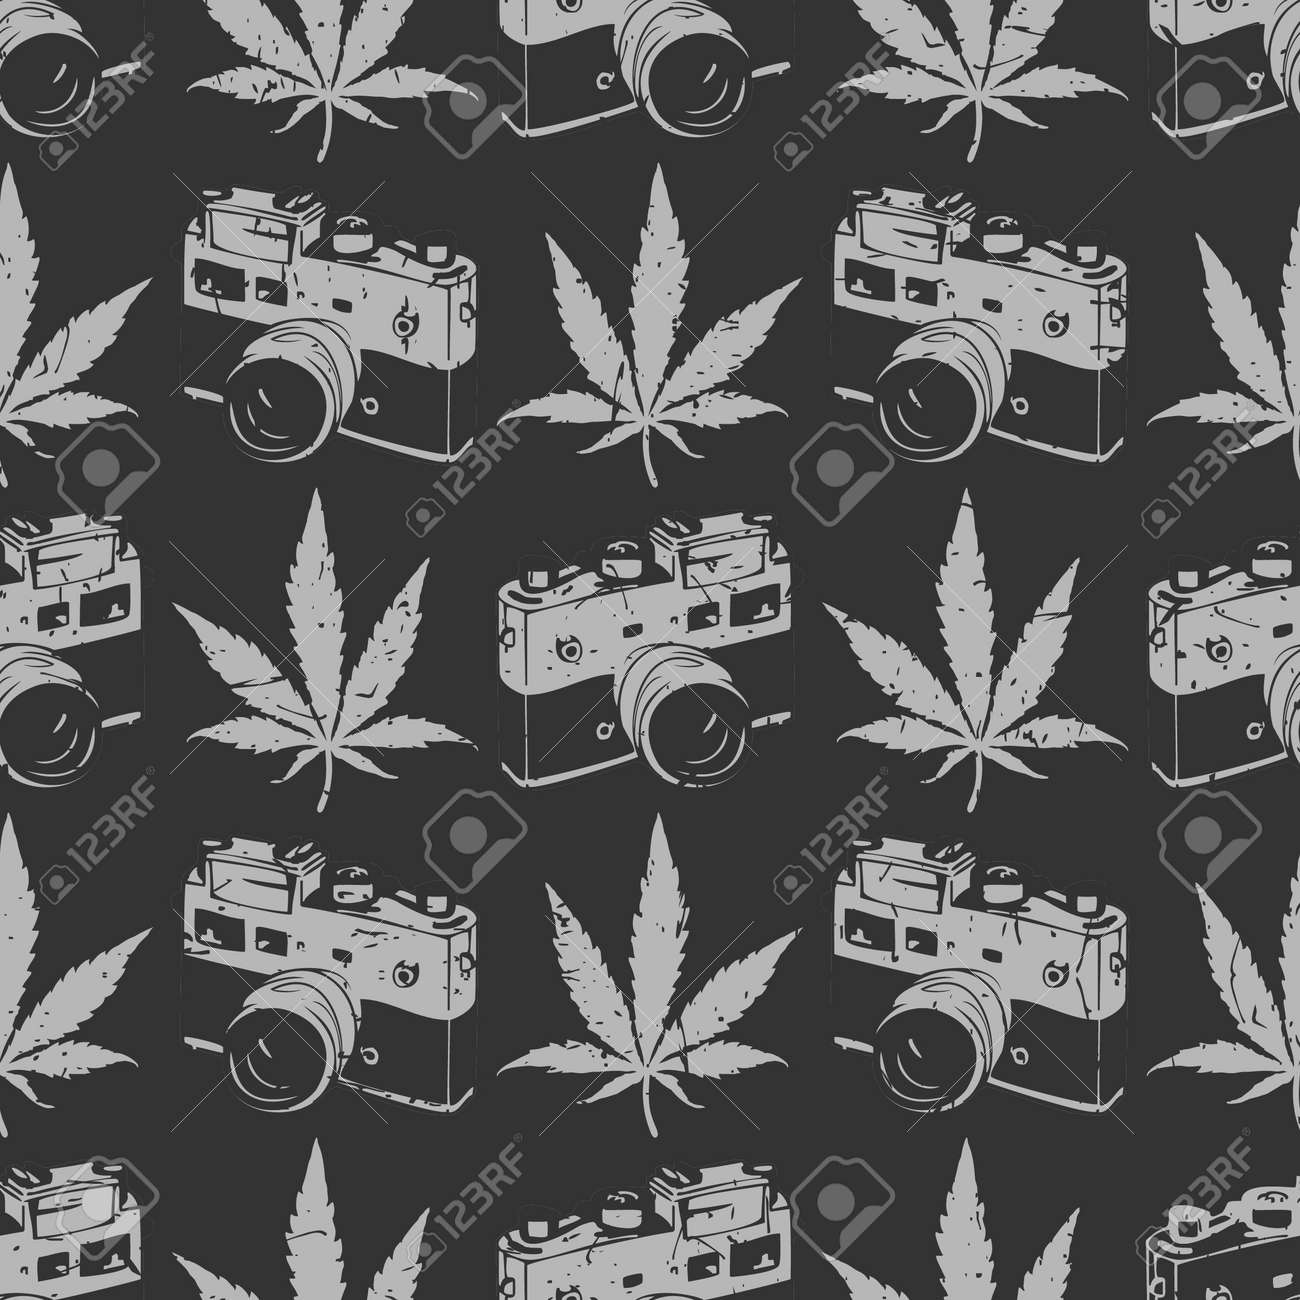 Decorative Seamless Pattern With Grey Marijuana Leaves And Old Camera On Black Background Wrapping Paper